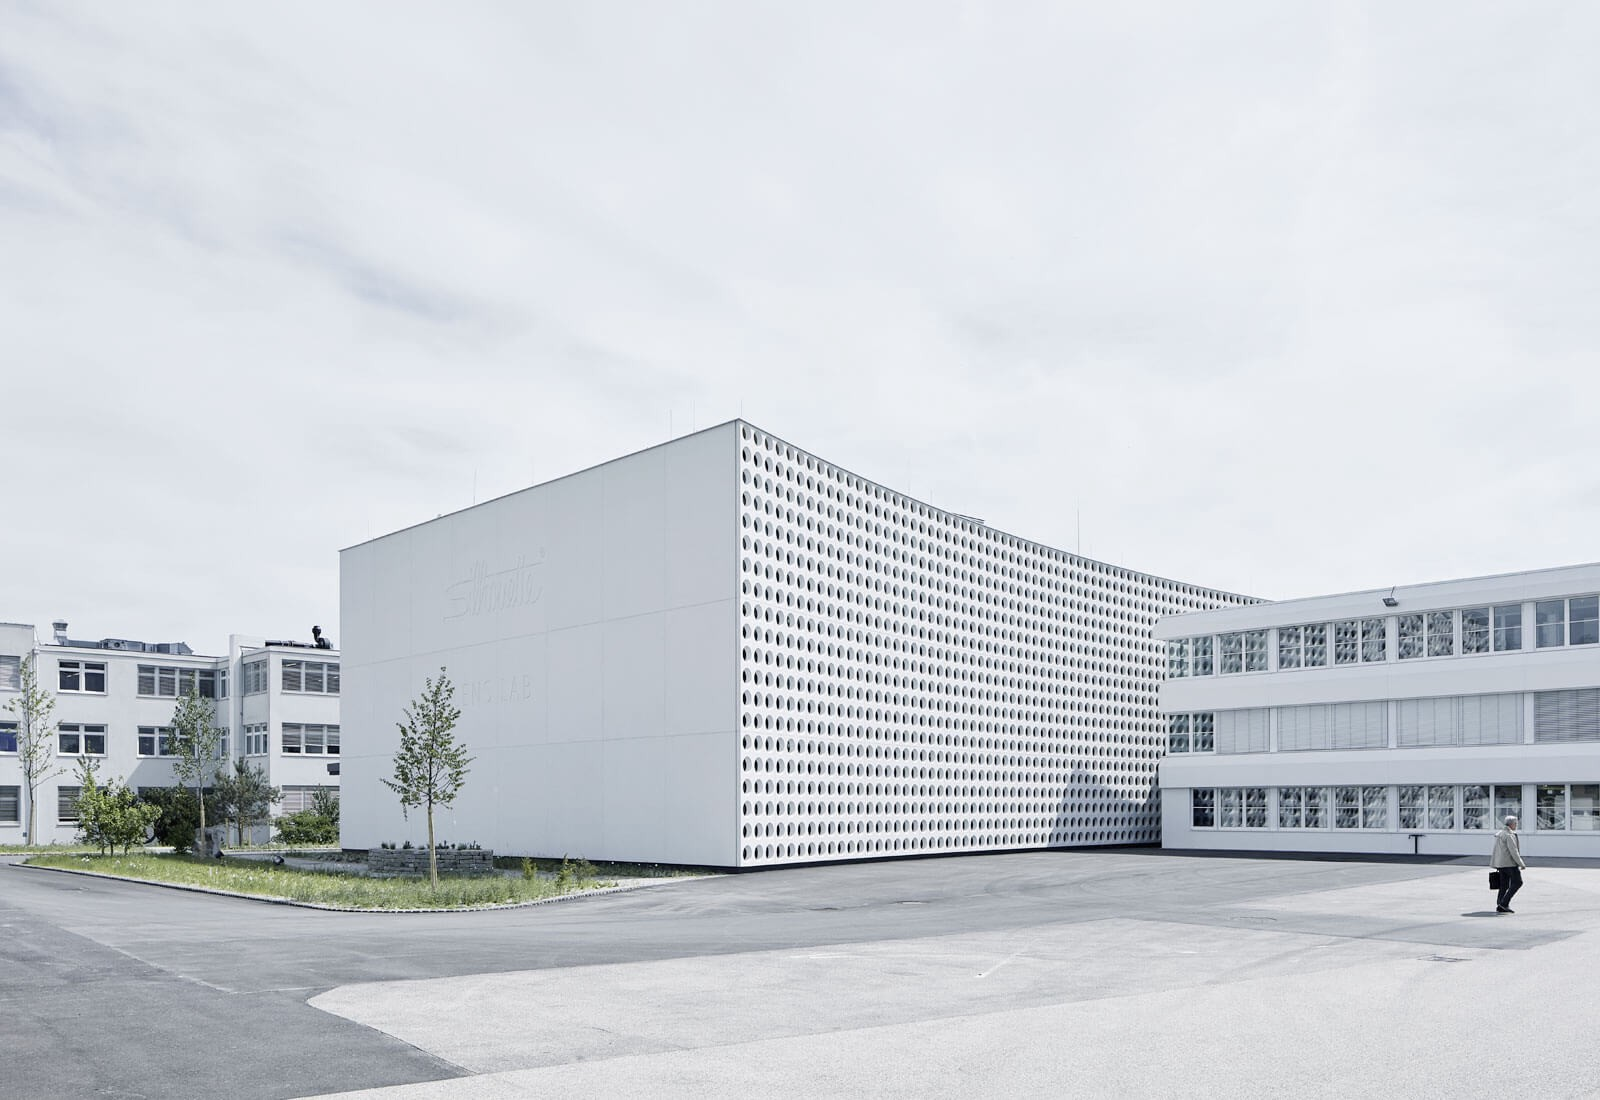 silhouette lens lab is a minimalist architecture project located in linz austria designed by x architects the facility is a production and warehouse